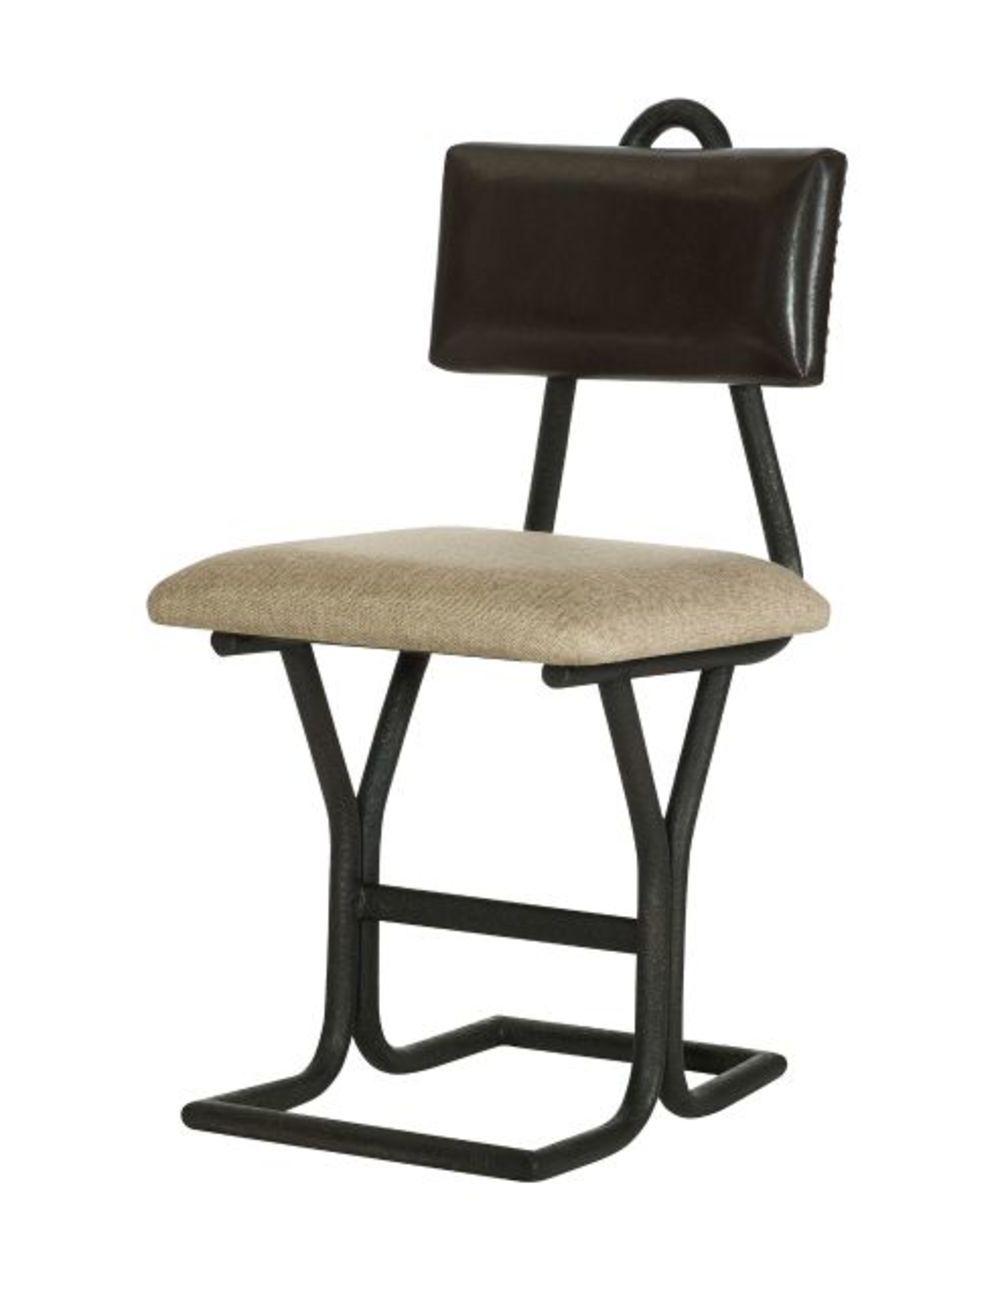 Hammary Furniture - Desk Chair